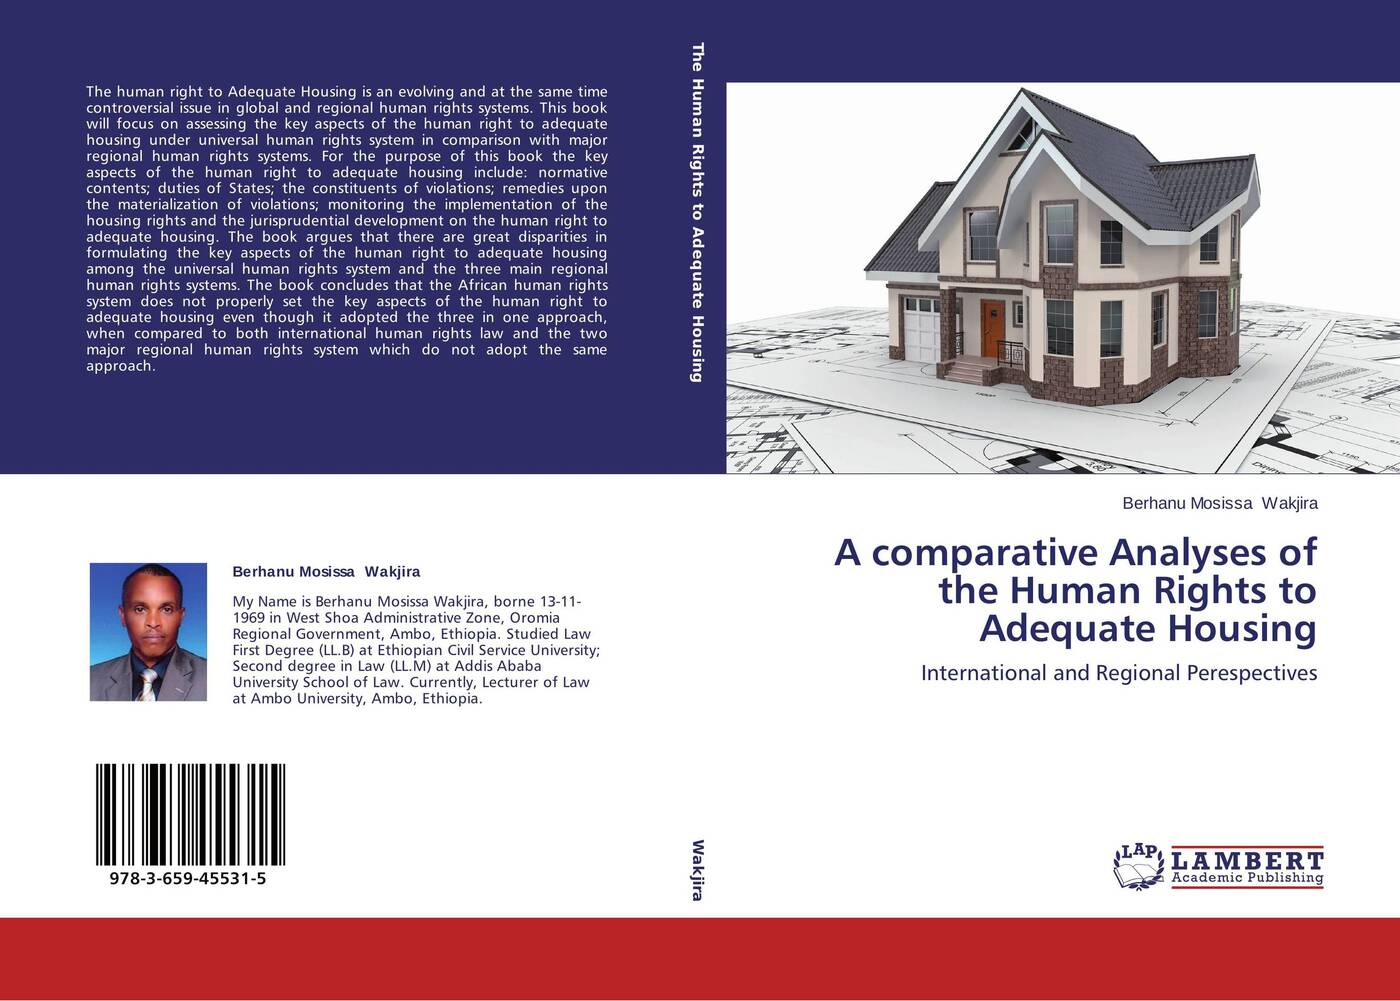 Berhanu Mosissa Wakjira A comparative Analyses of the Human Rights to Adequate Housing